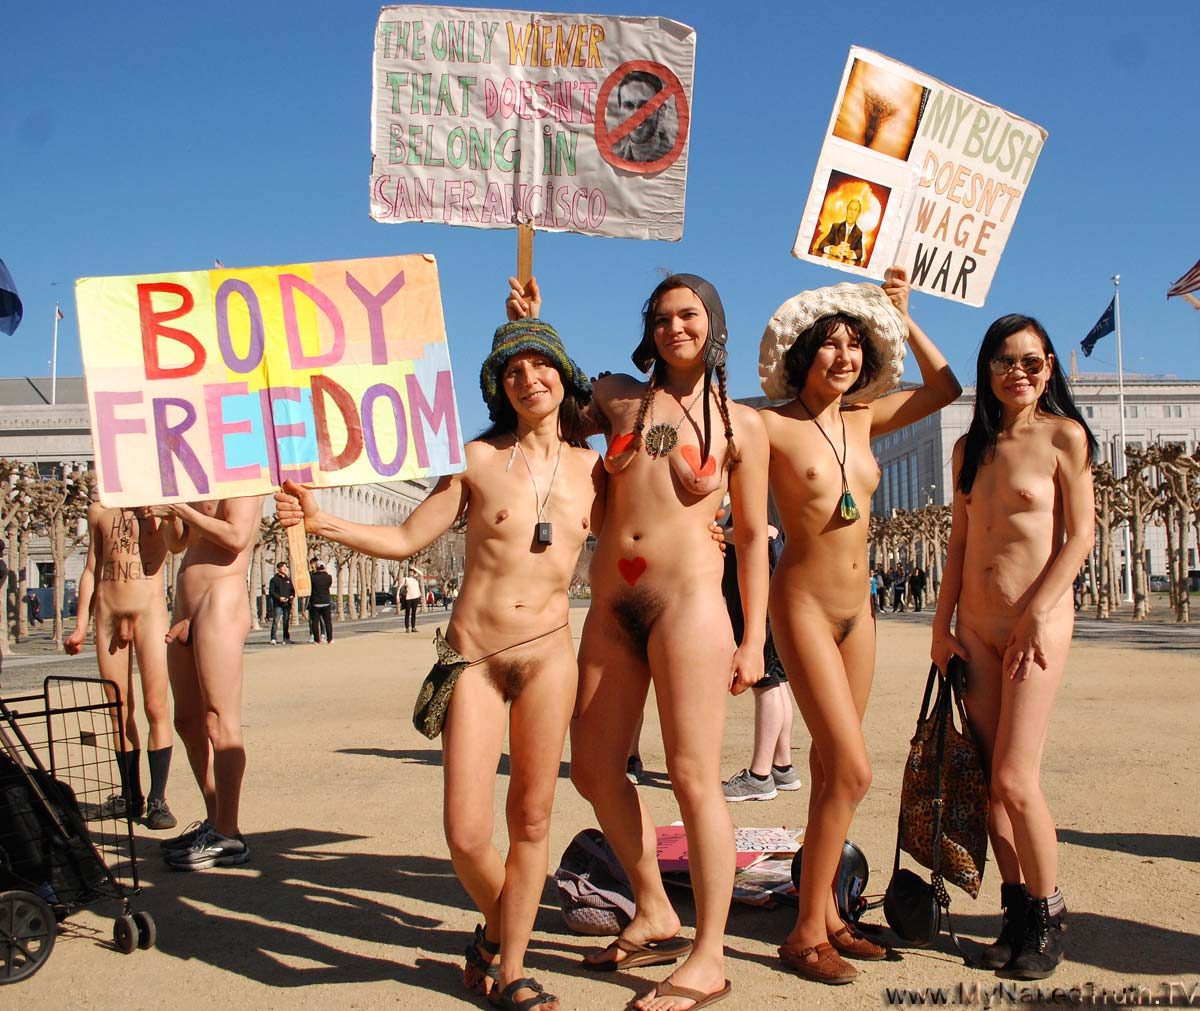 Campaign for nudity 15